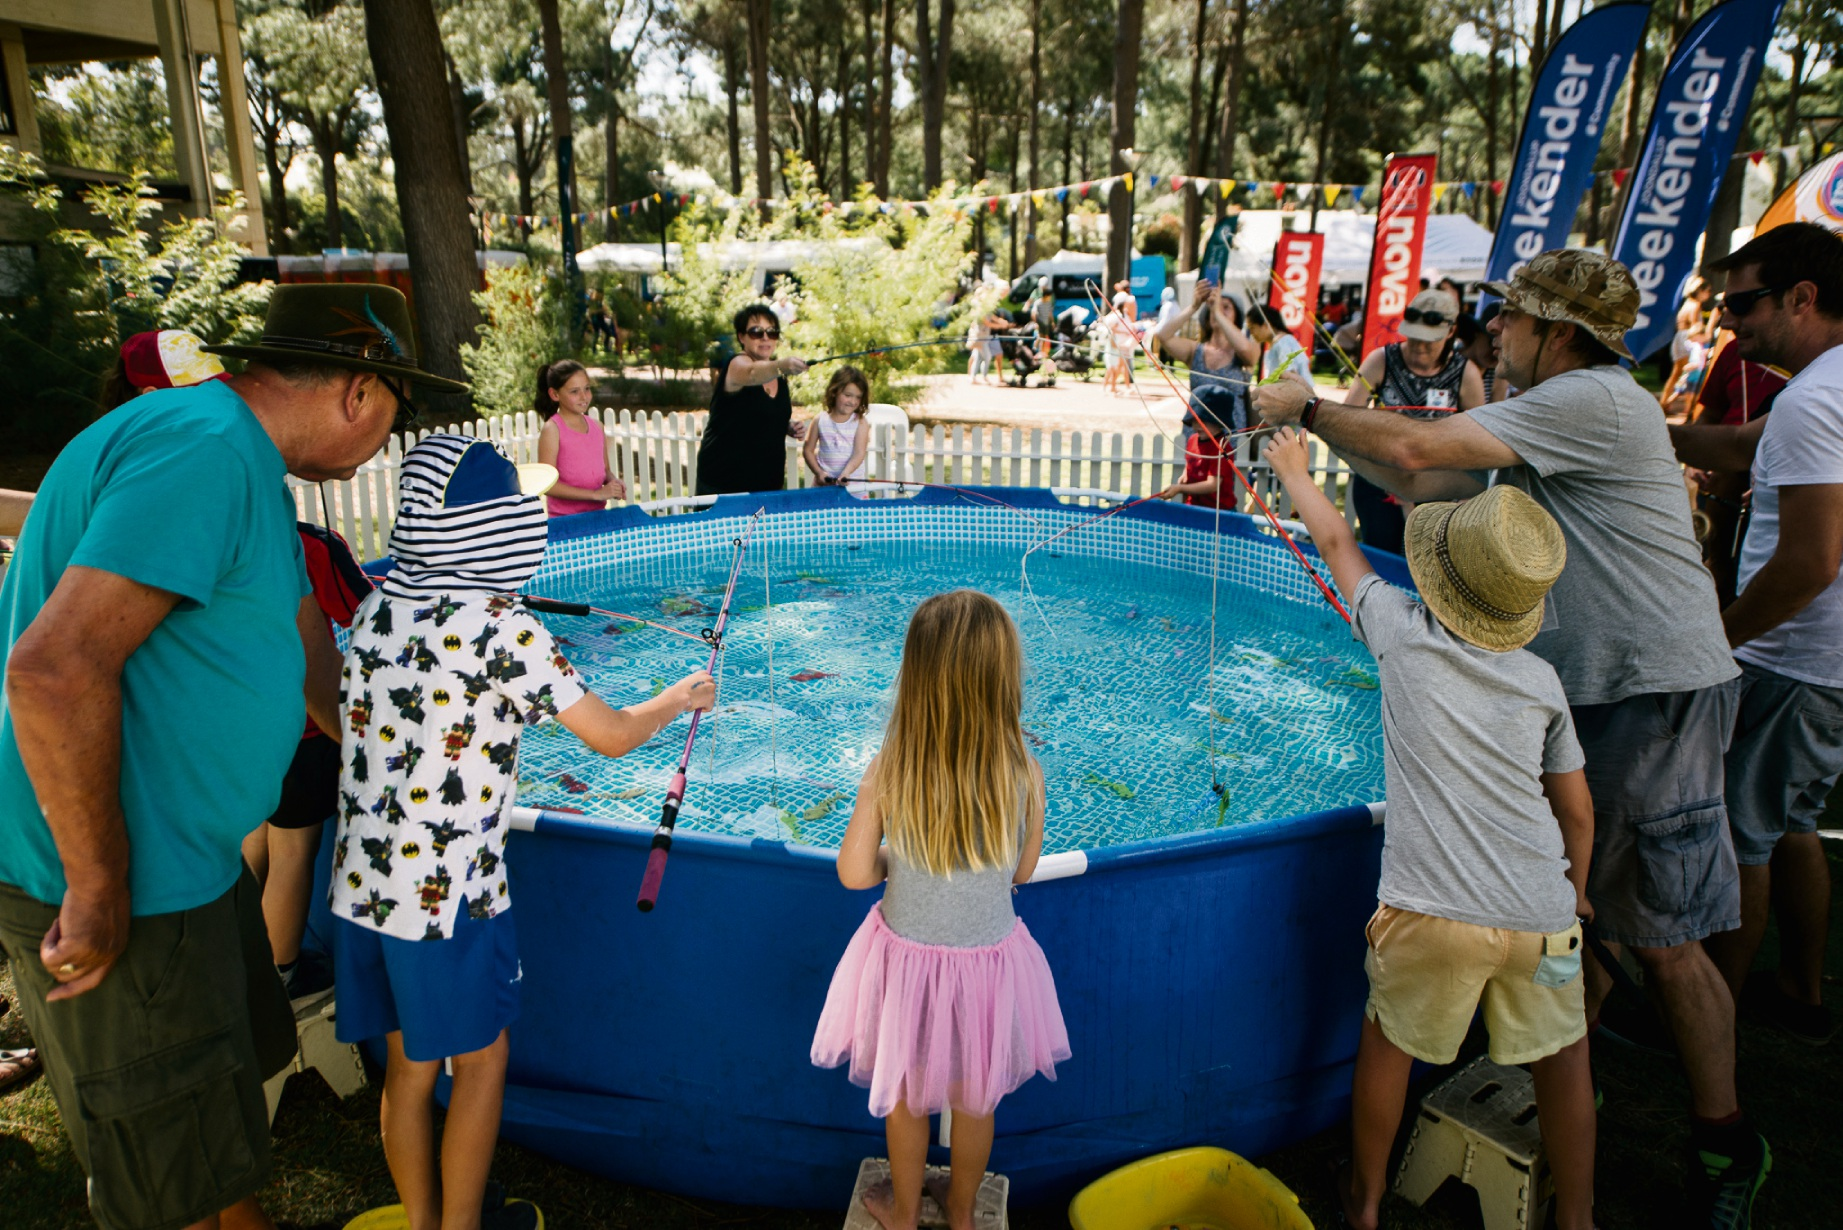 The fishing pond at the City of Joondalup Little Feet Festival at ECU Joondalup.